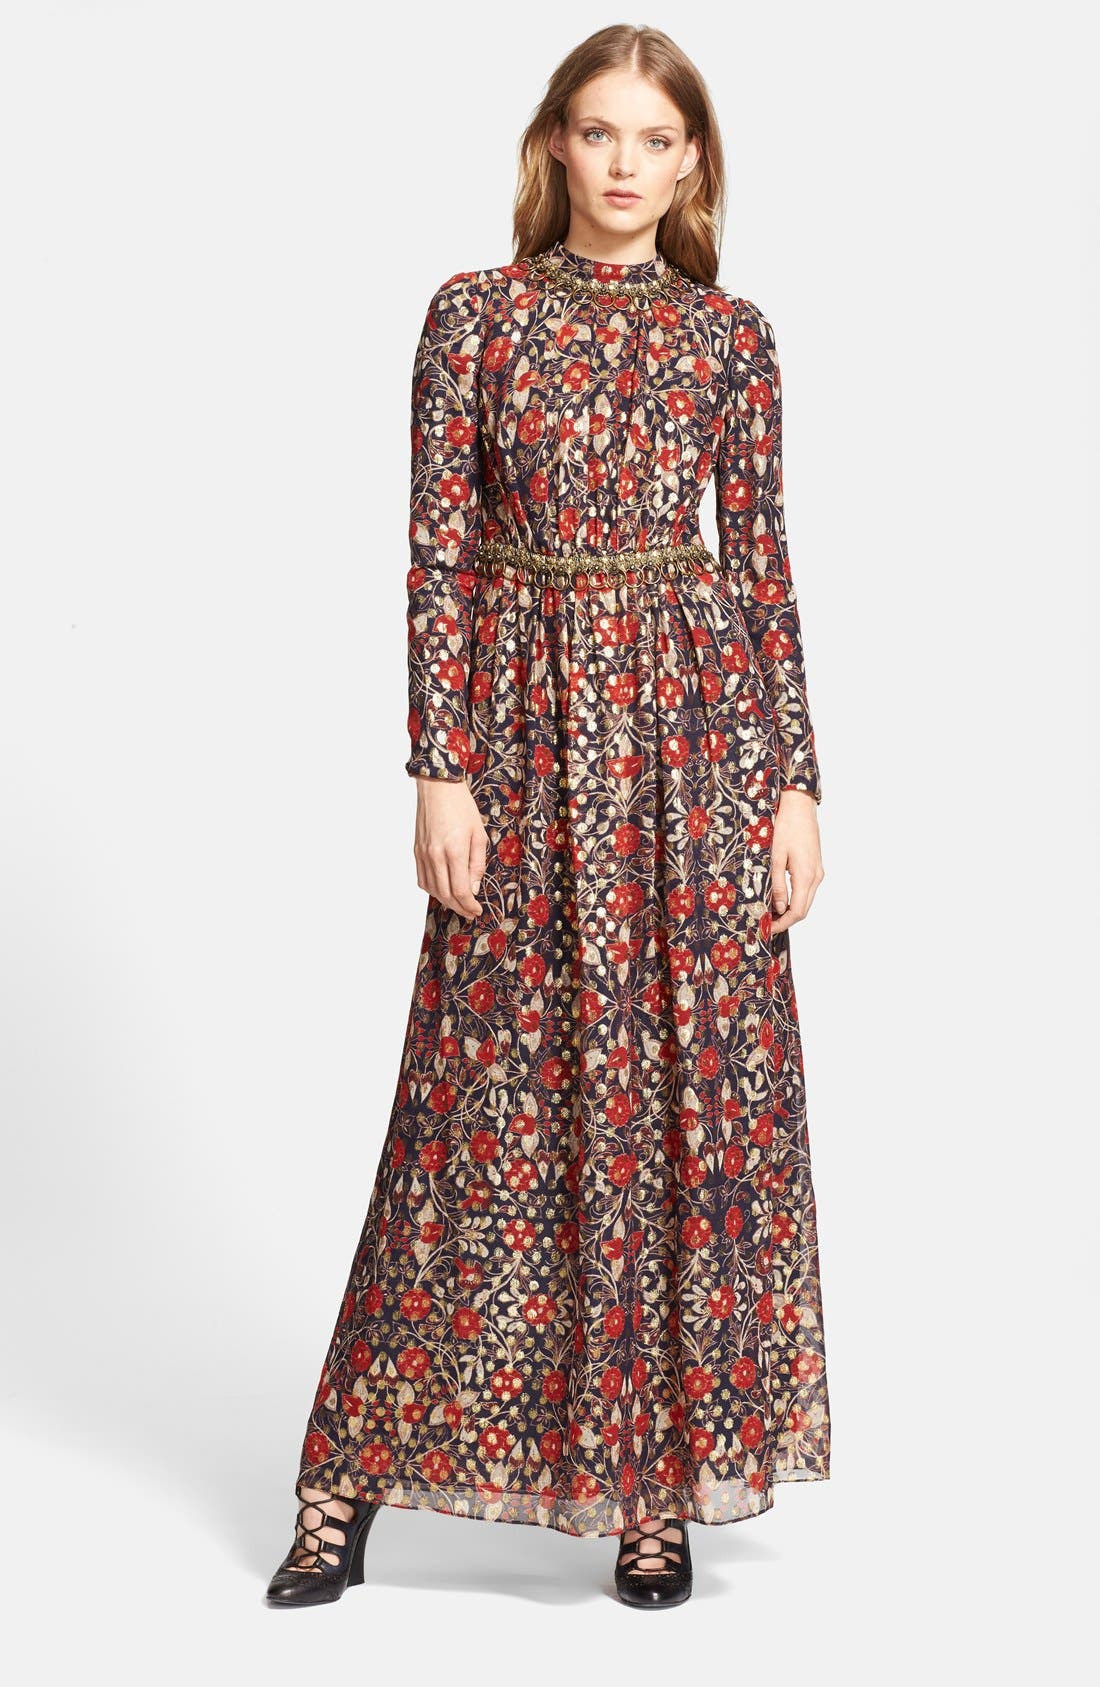 Main Image - Tory Burch 'Leane' Floral Print Embellished Gown